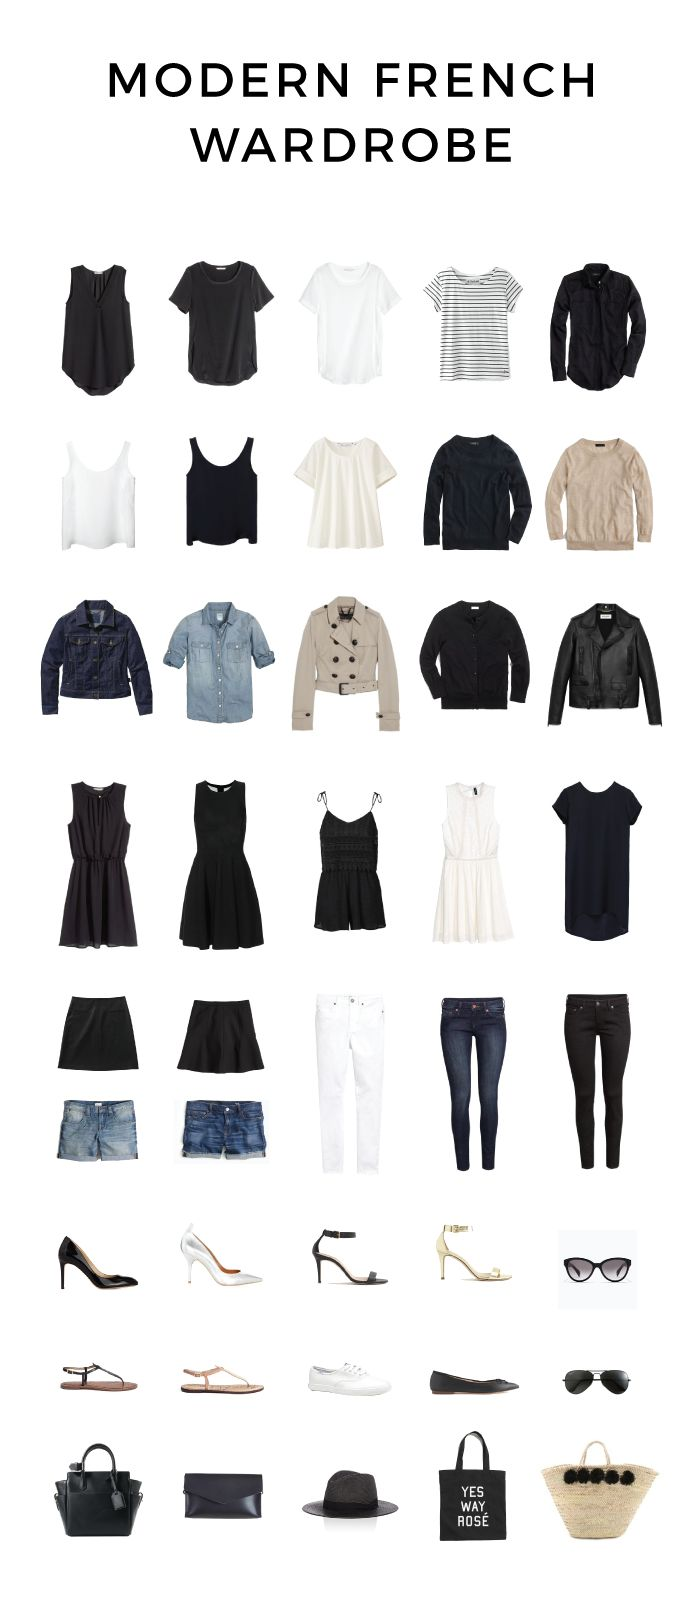 MINIMAL + CLASSIC @nordhaven: Modern French Wardrobe for Spring and Summer | modernfrenchblog.com